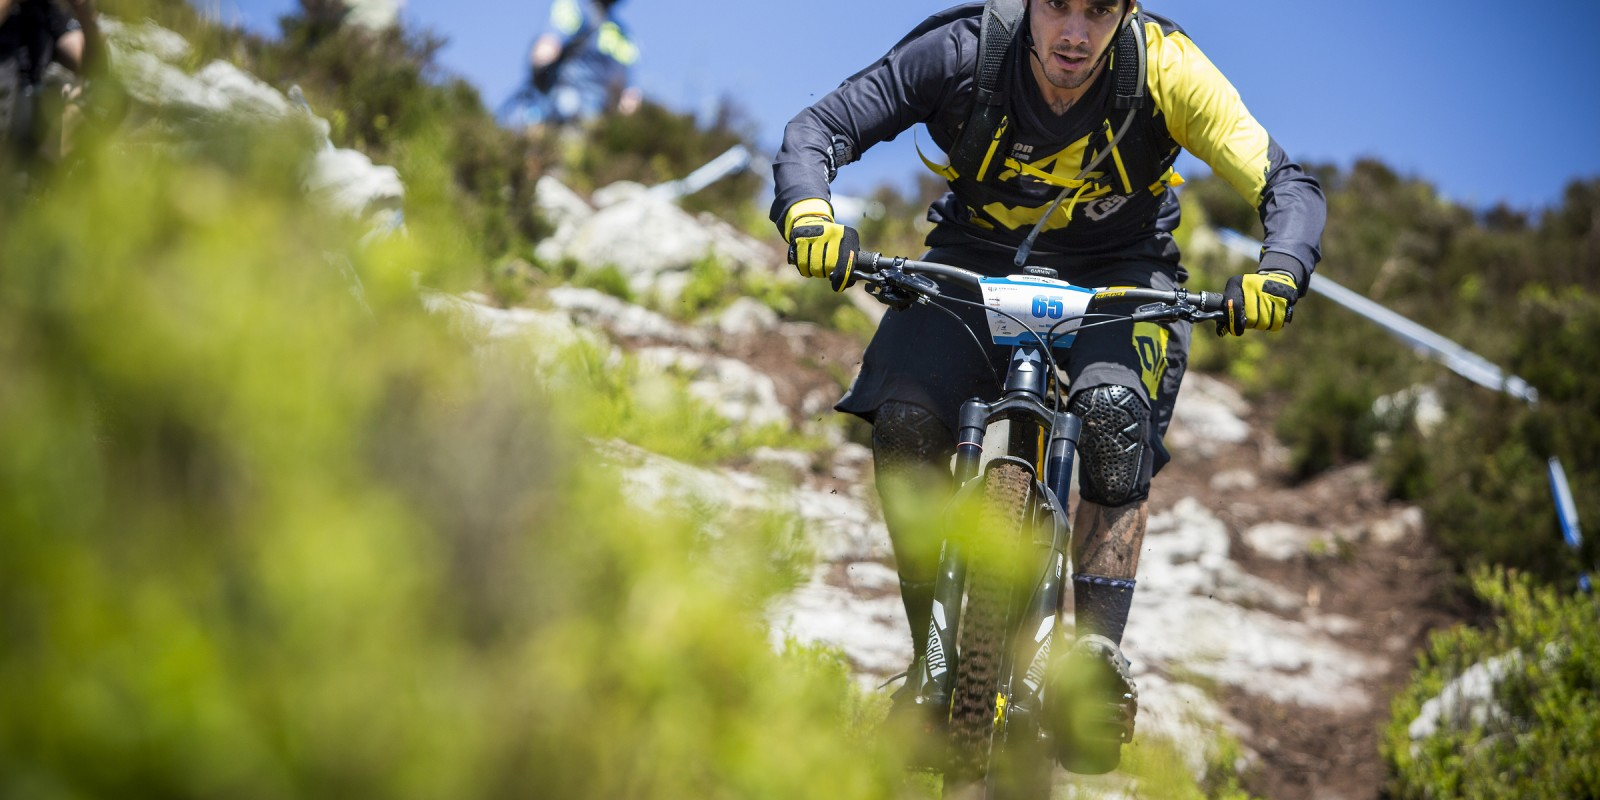 Sam Hil wins 2nd place at the Enduro World Series Round 3 in Wicklow, Ireland